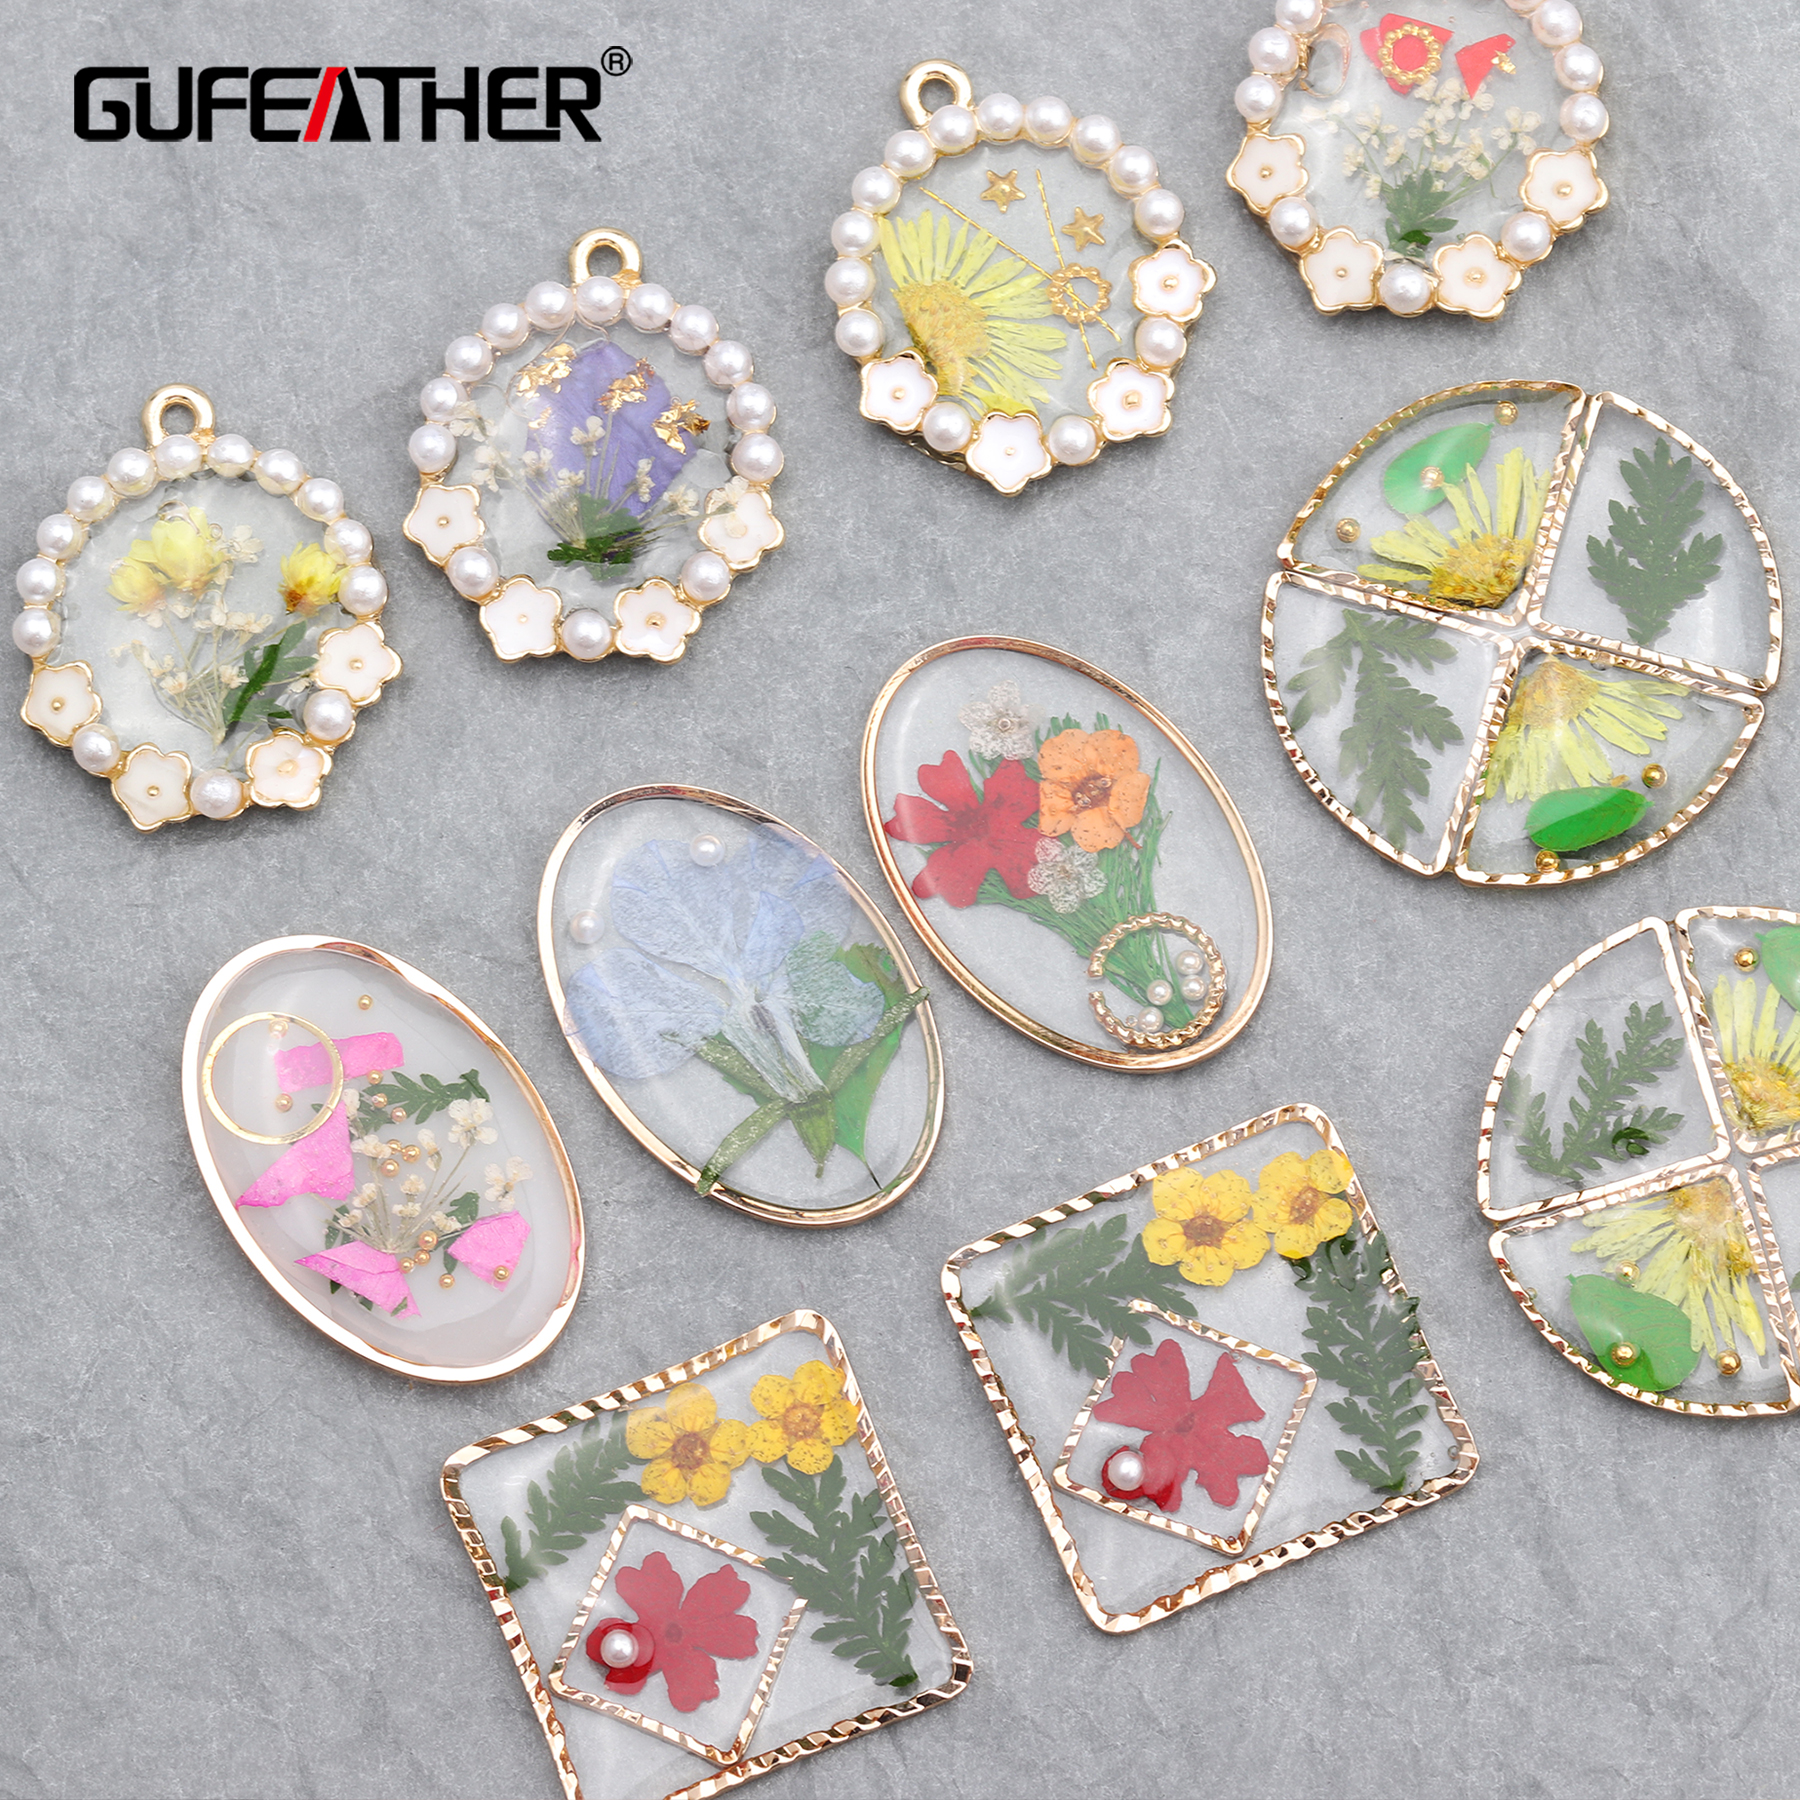 GUFEATHER M621,jewelry Accessories,resin,dried Flower,diy Beads Pendant,jump Ring,hand Made,jewelry Making,diy Earring,4pcs/lot